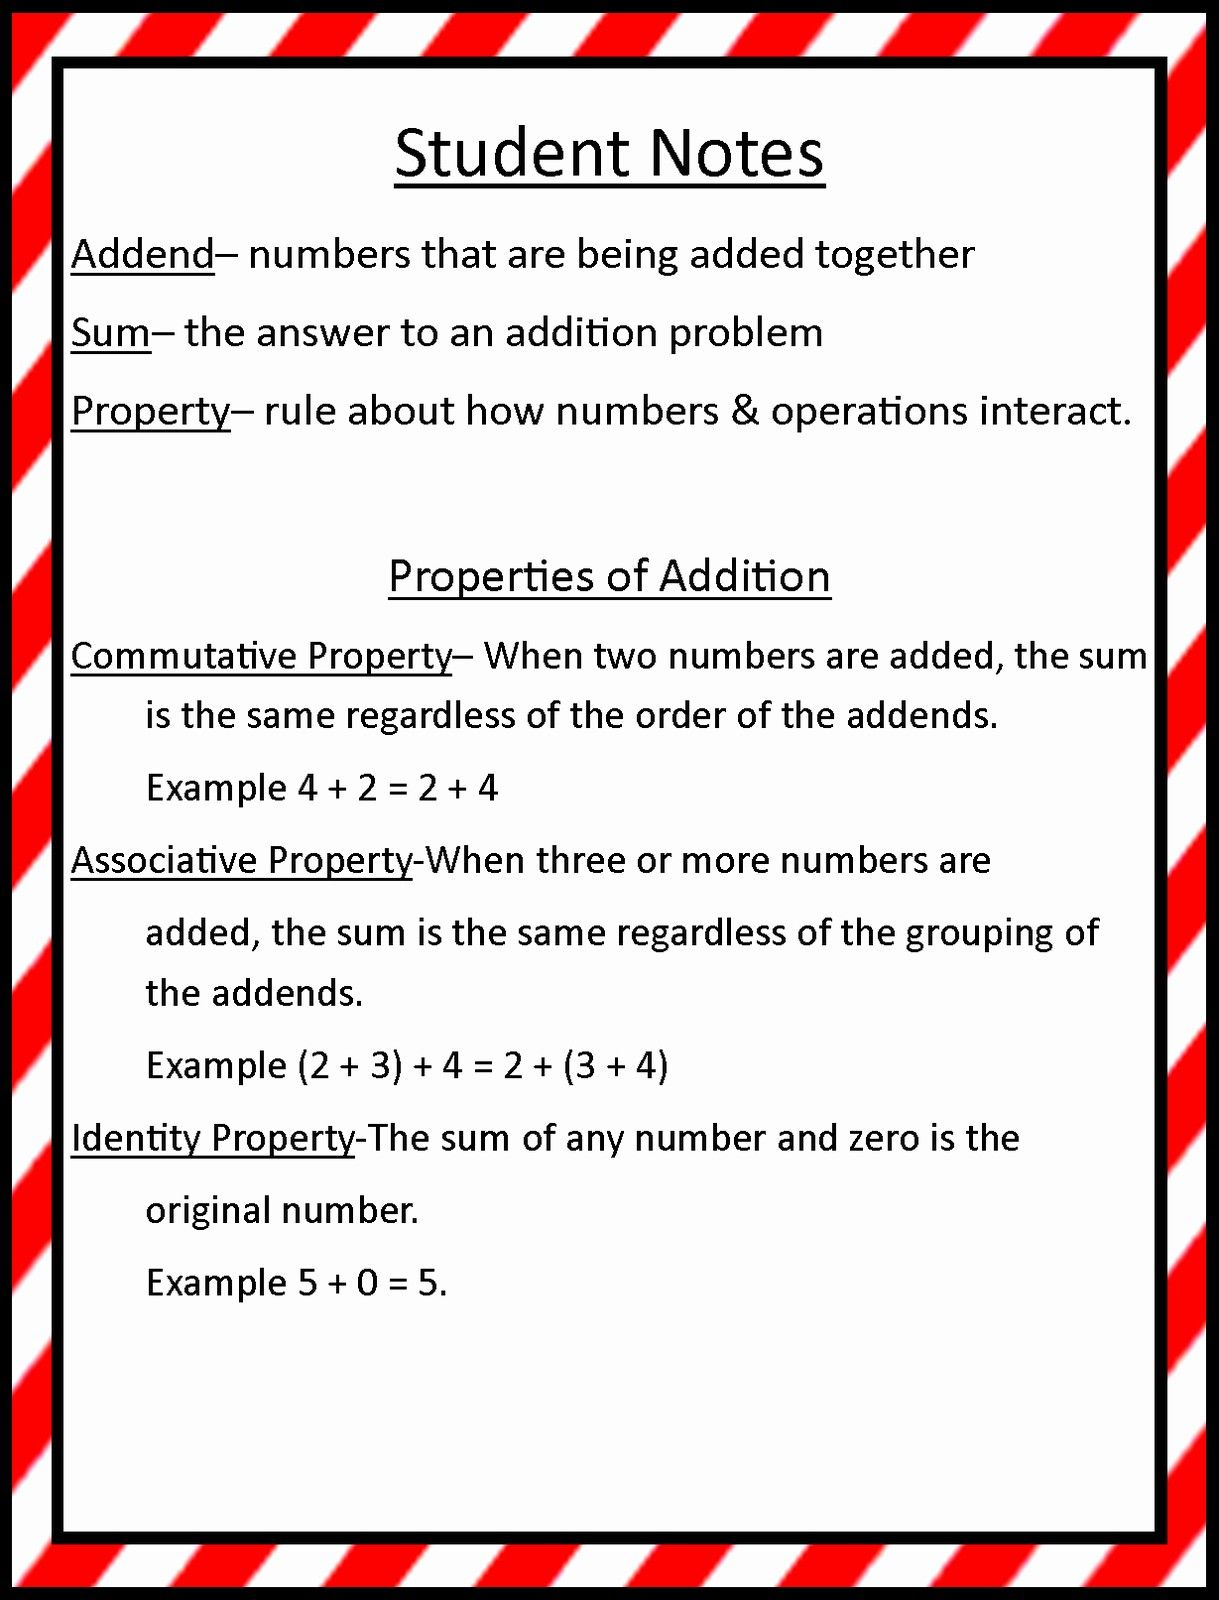 Associative Property Of Addition Worksheets 3rd Grade